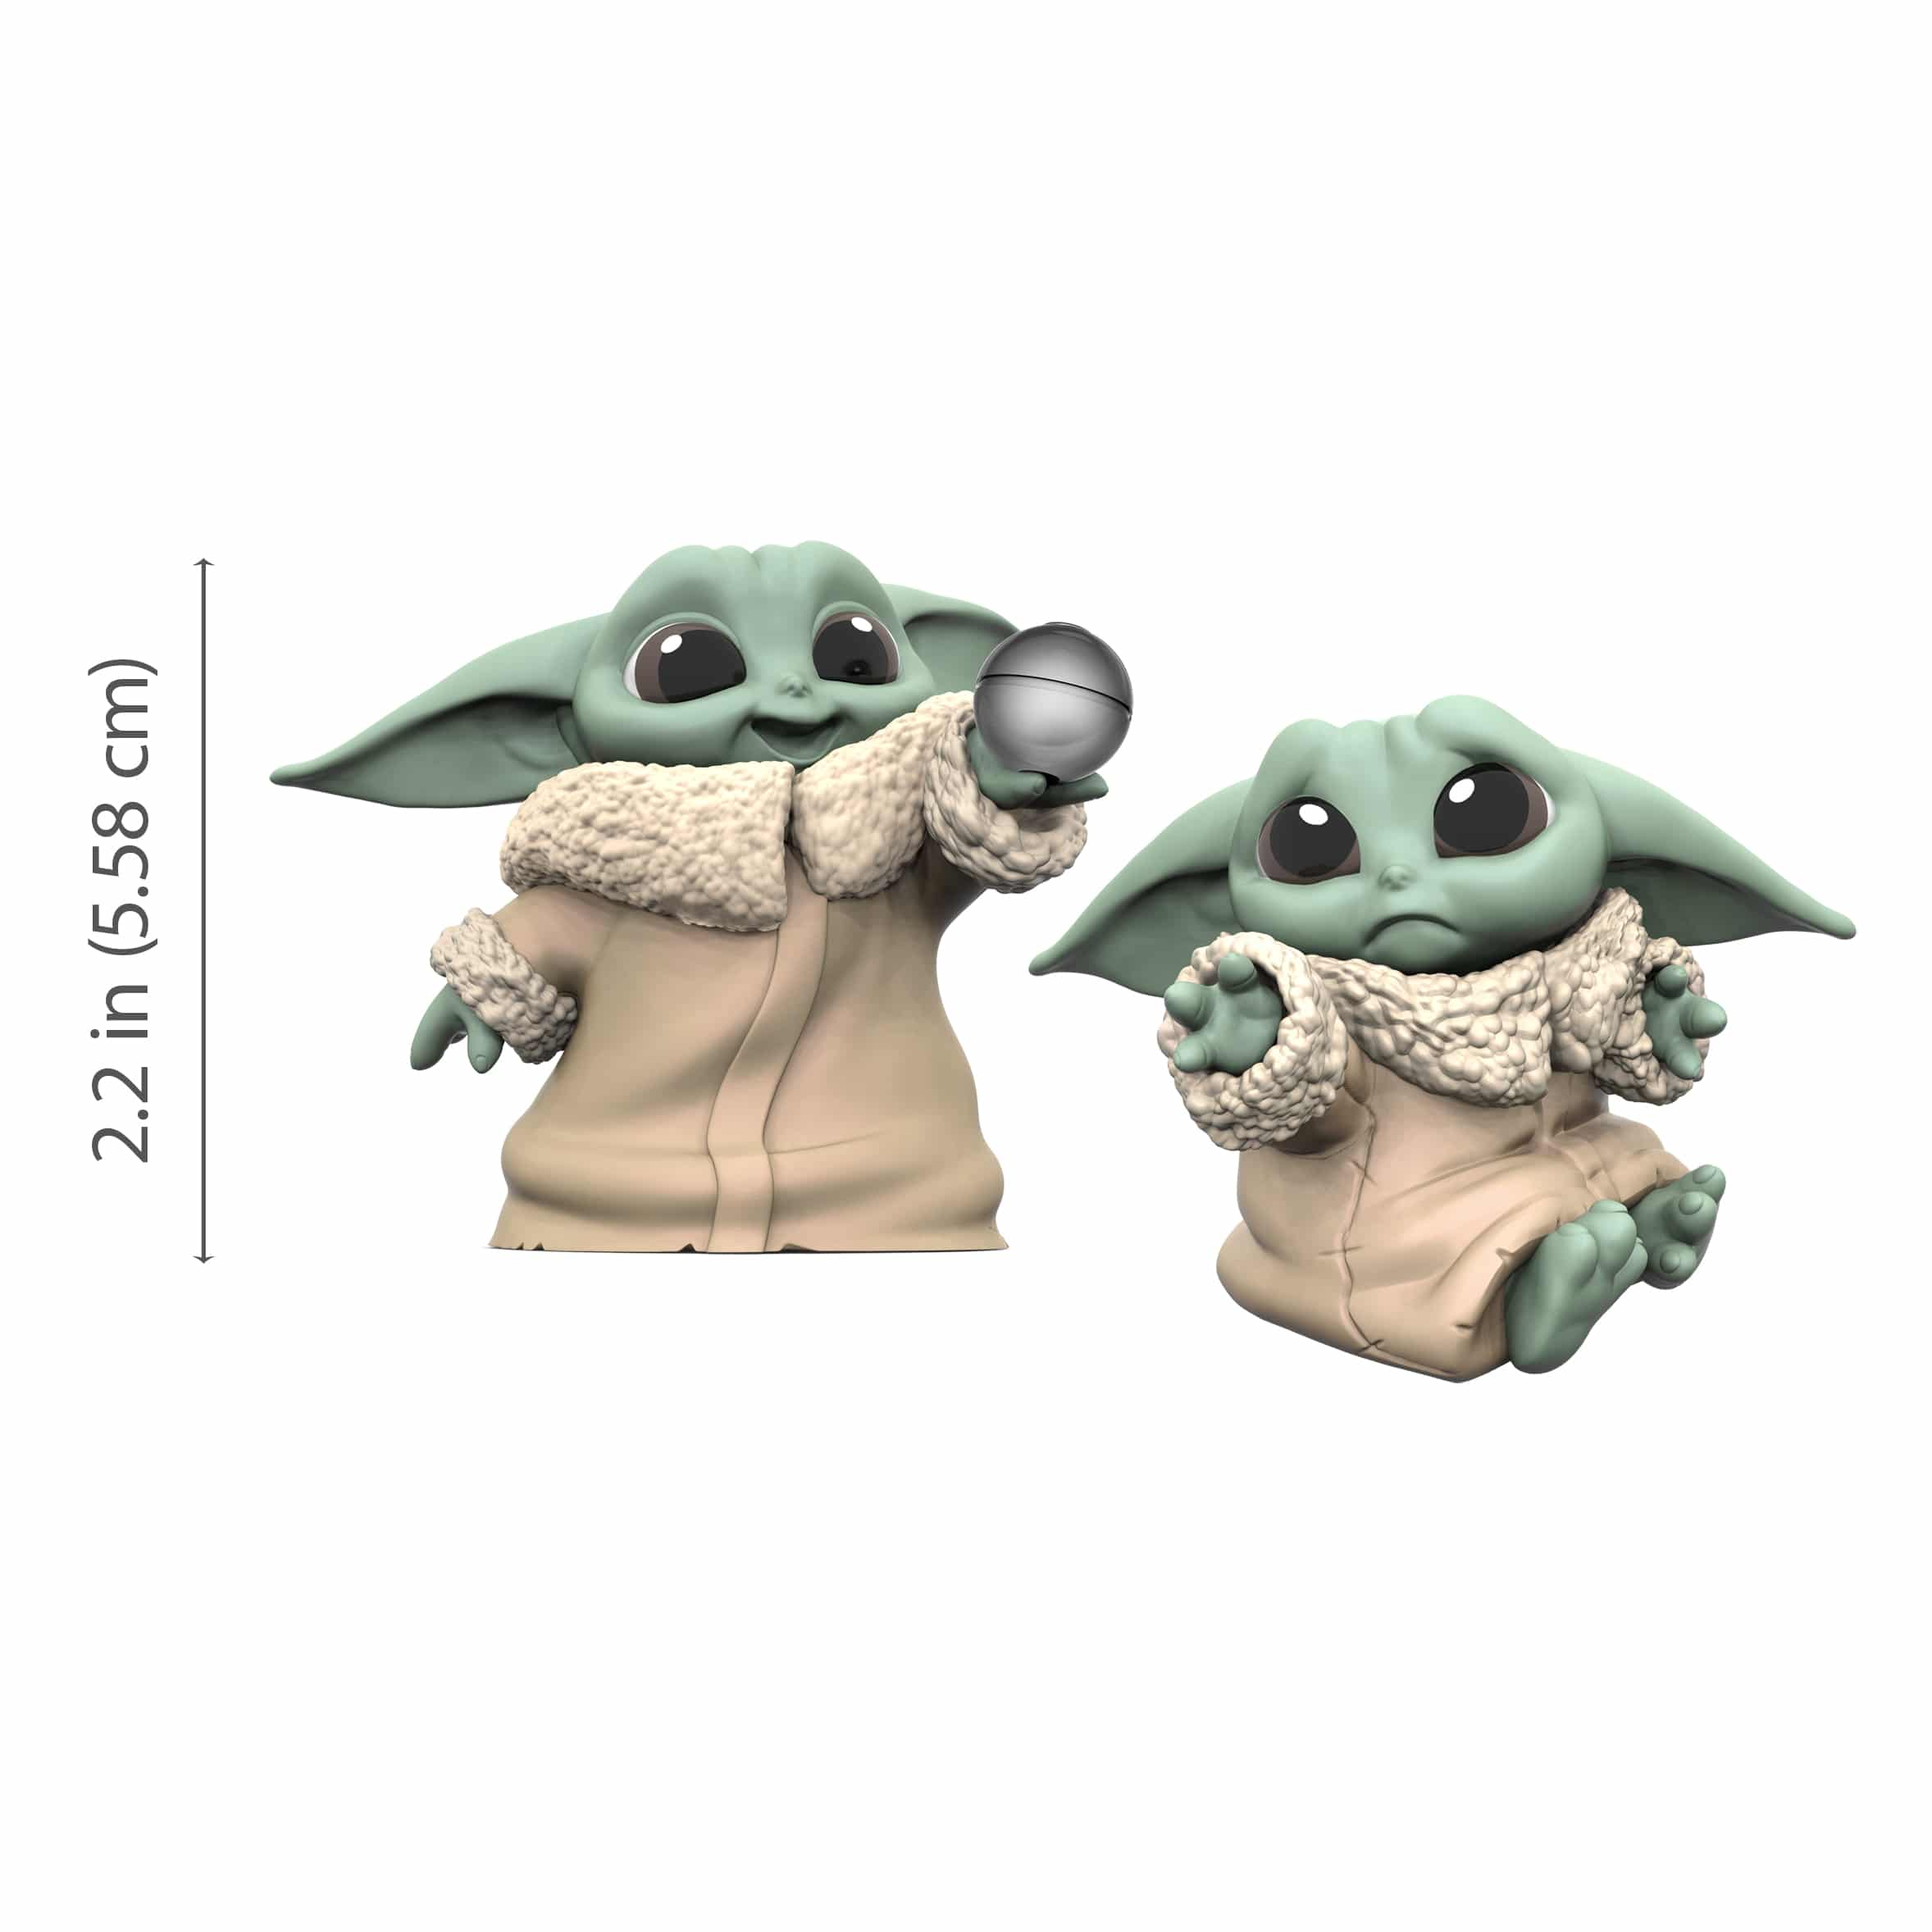 Hasbro's first Baby Yoda toys are here and they're freaking adorable 19